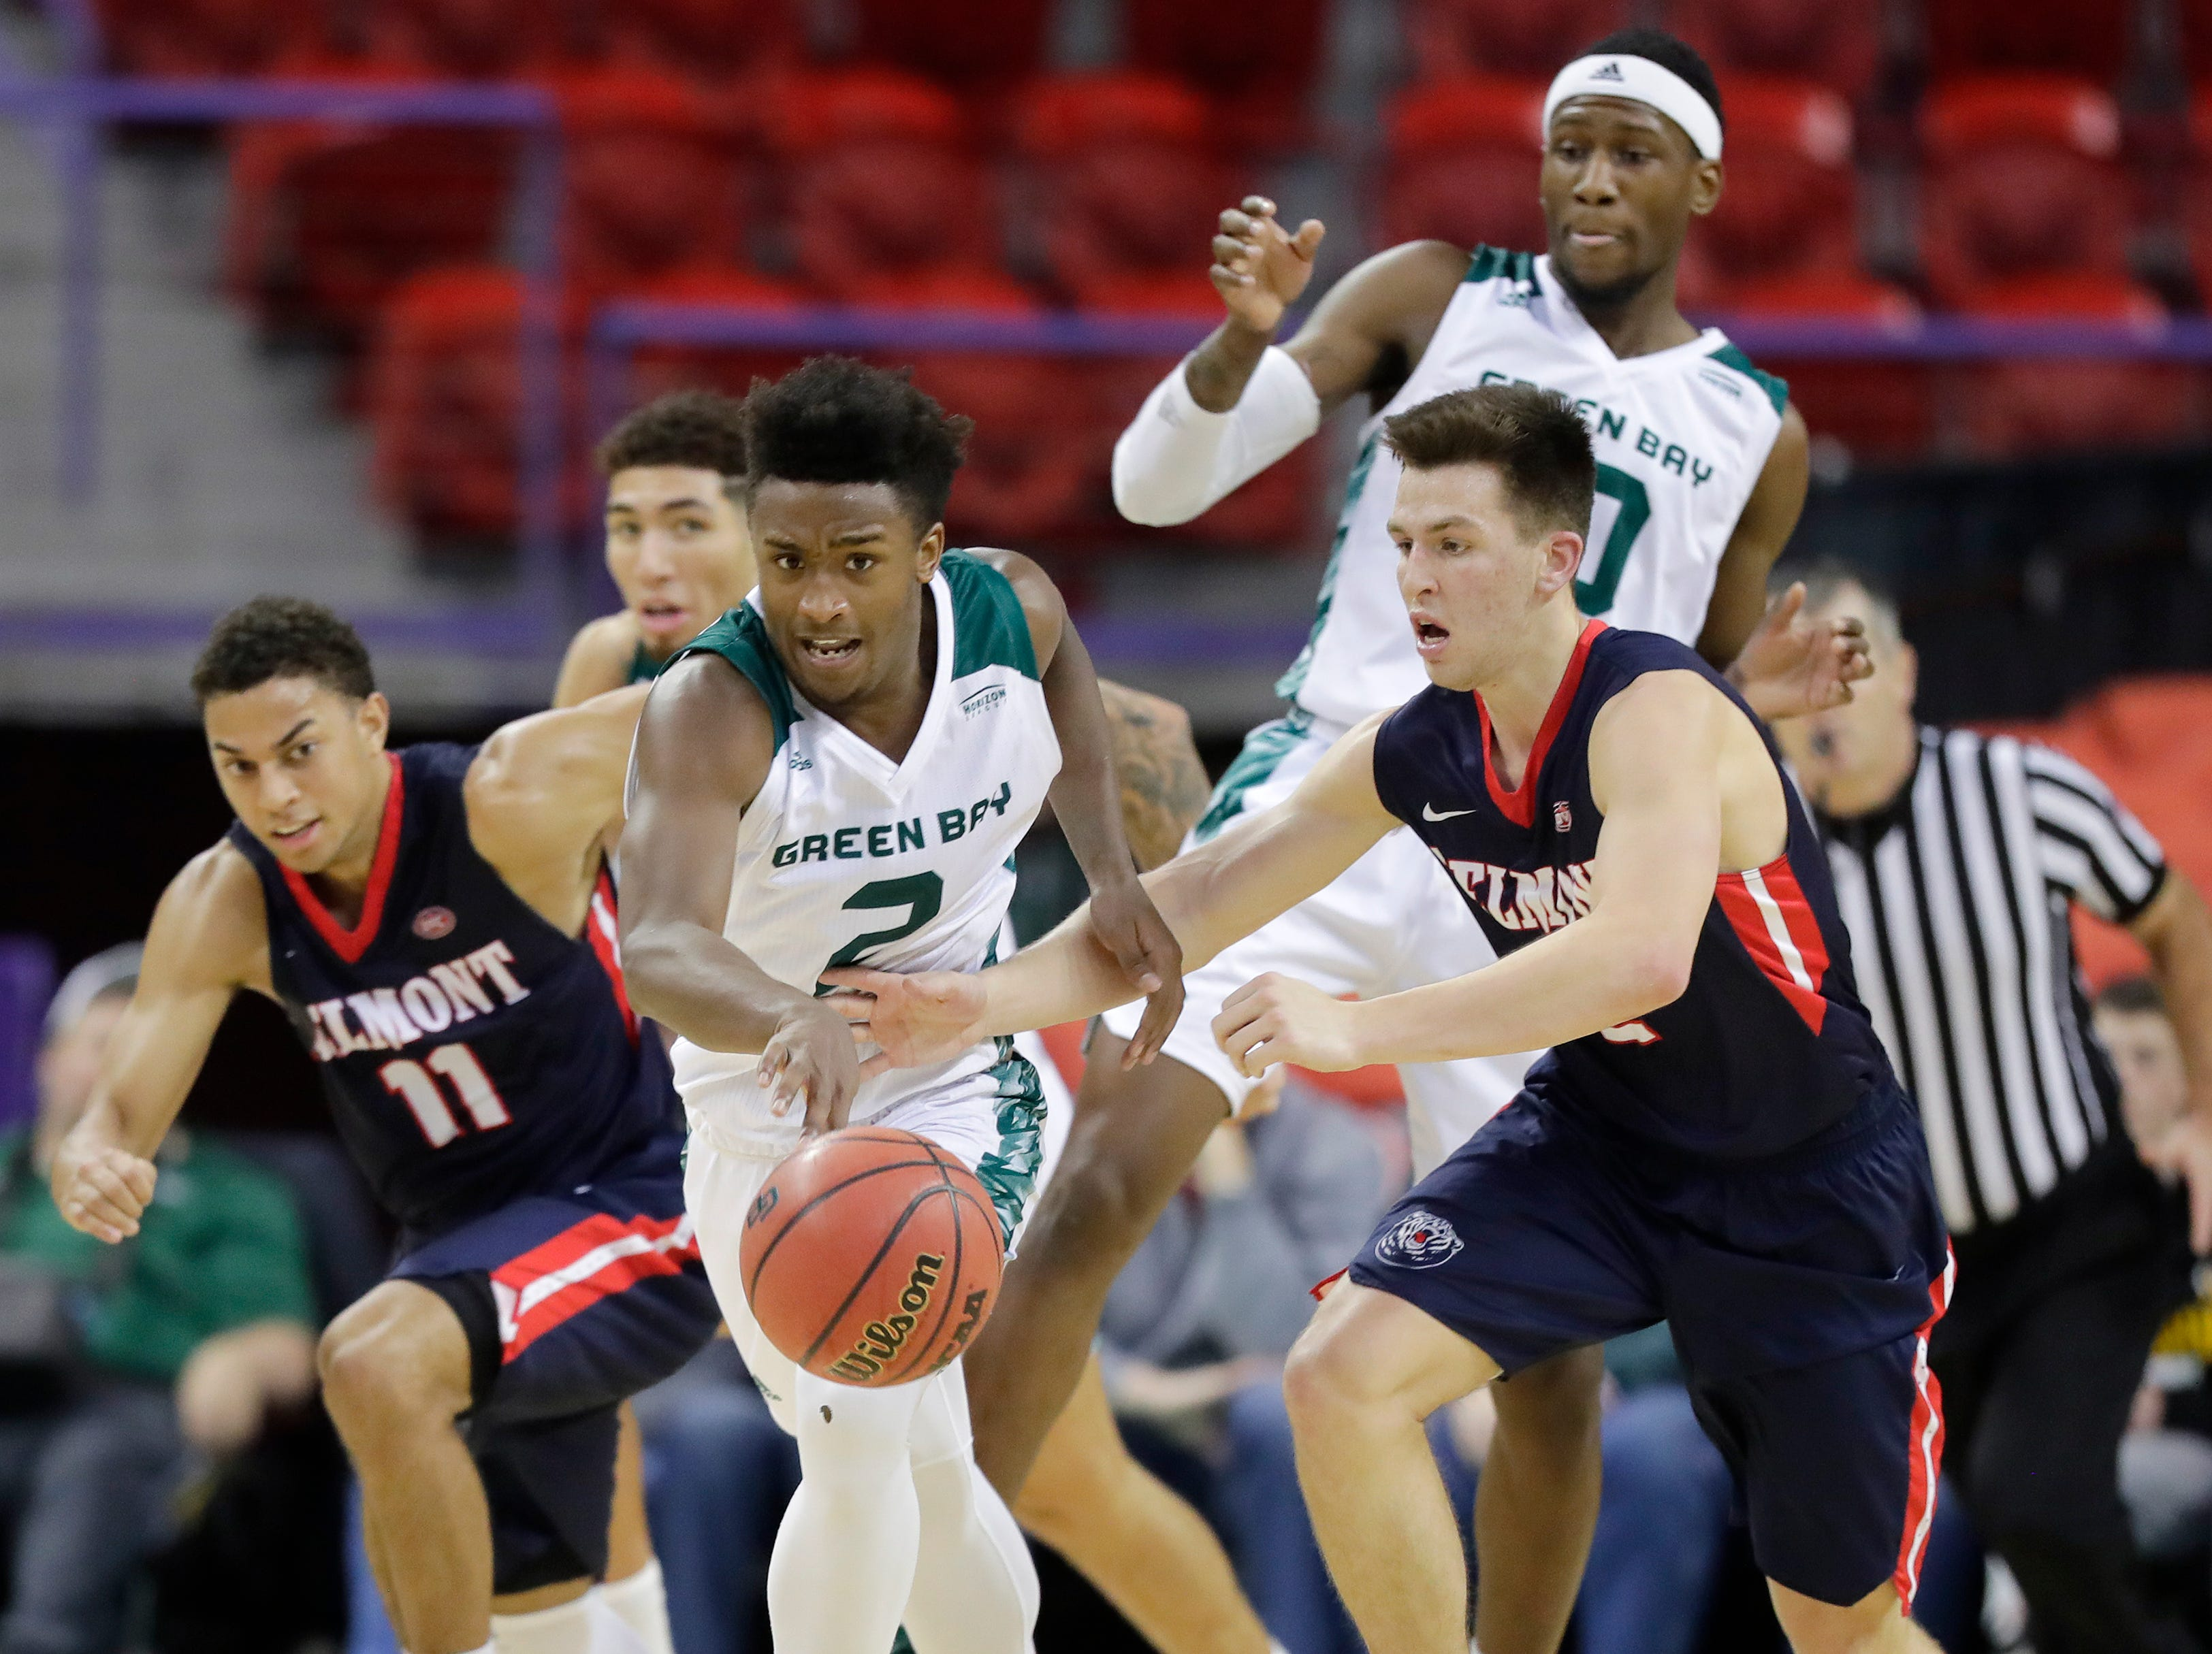 Green Bay Phoenix guard PJ Pipes (2) gets a steal against the Belmont Bruins in a NCAA basketball game at the Resch Center on Saturday, December 1, 2018 in Ashwaubenon, Wis.